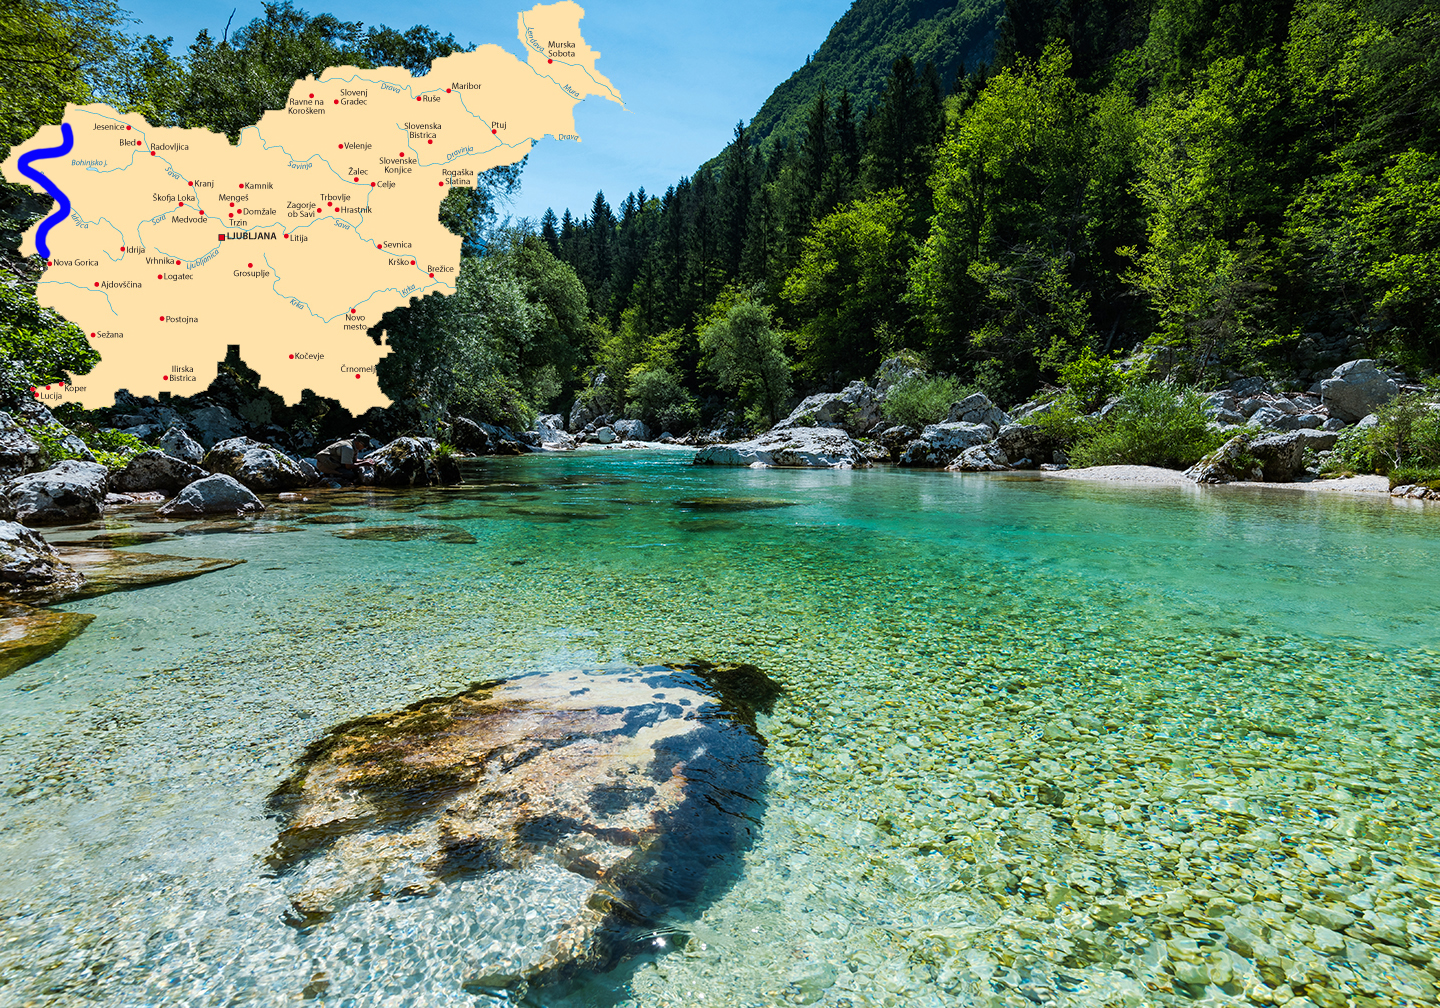 A shallow section of the Soca River, one of the best rivers for fly fishing in Slovenia. There is a map of the country added on the left of the photo.